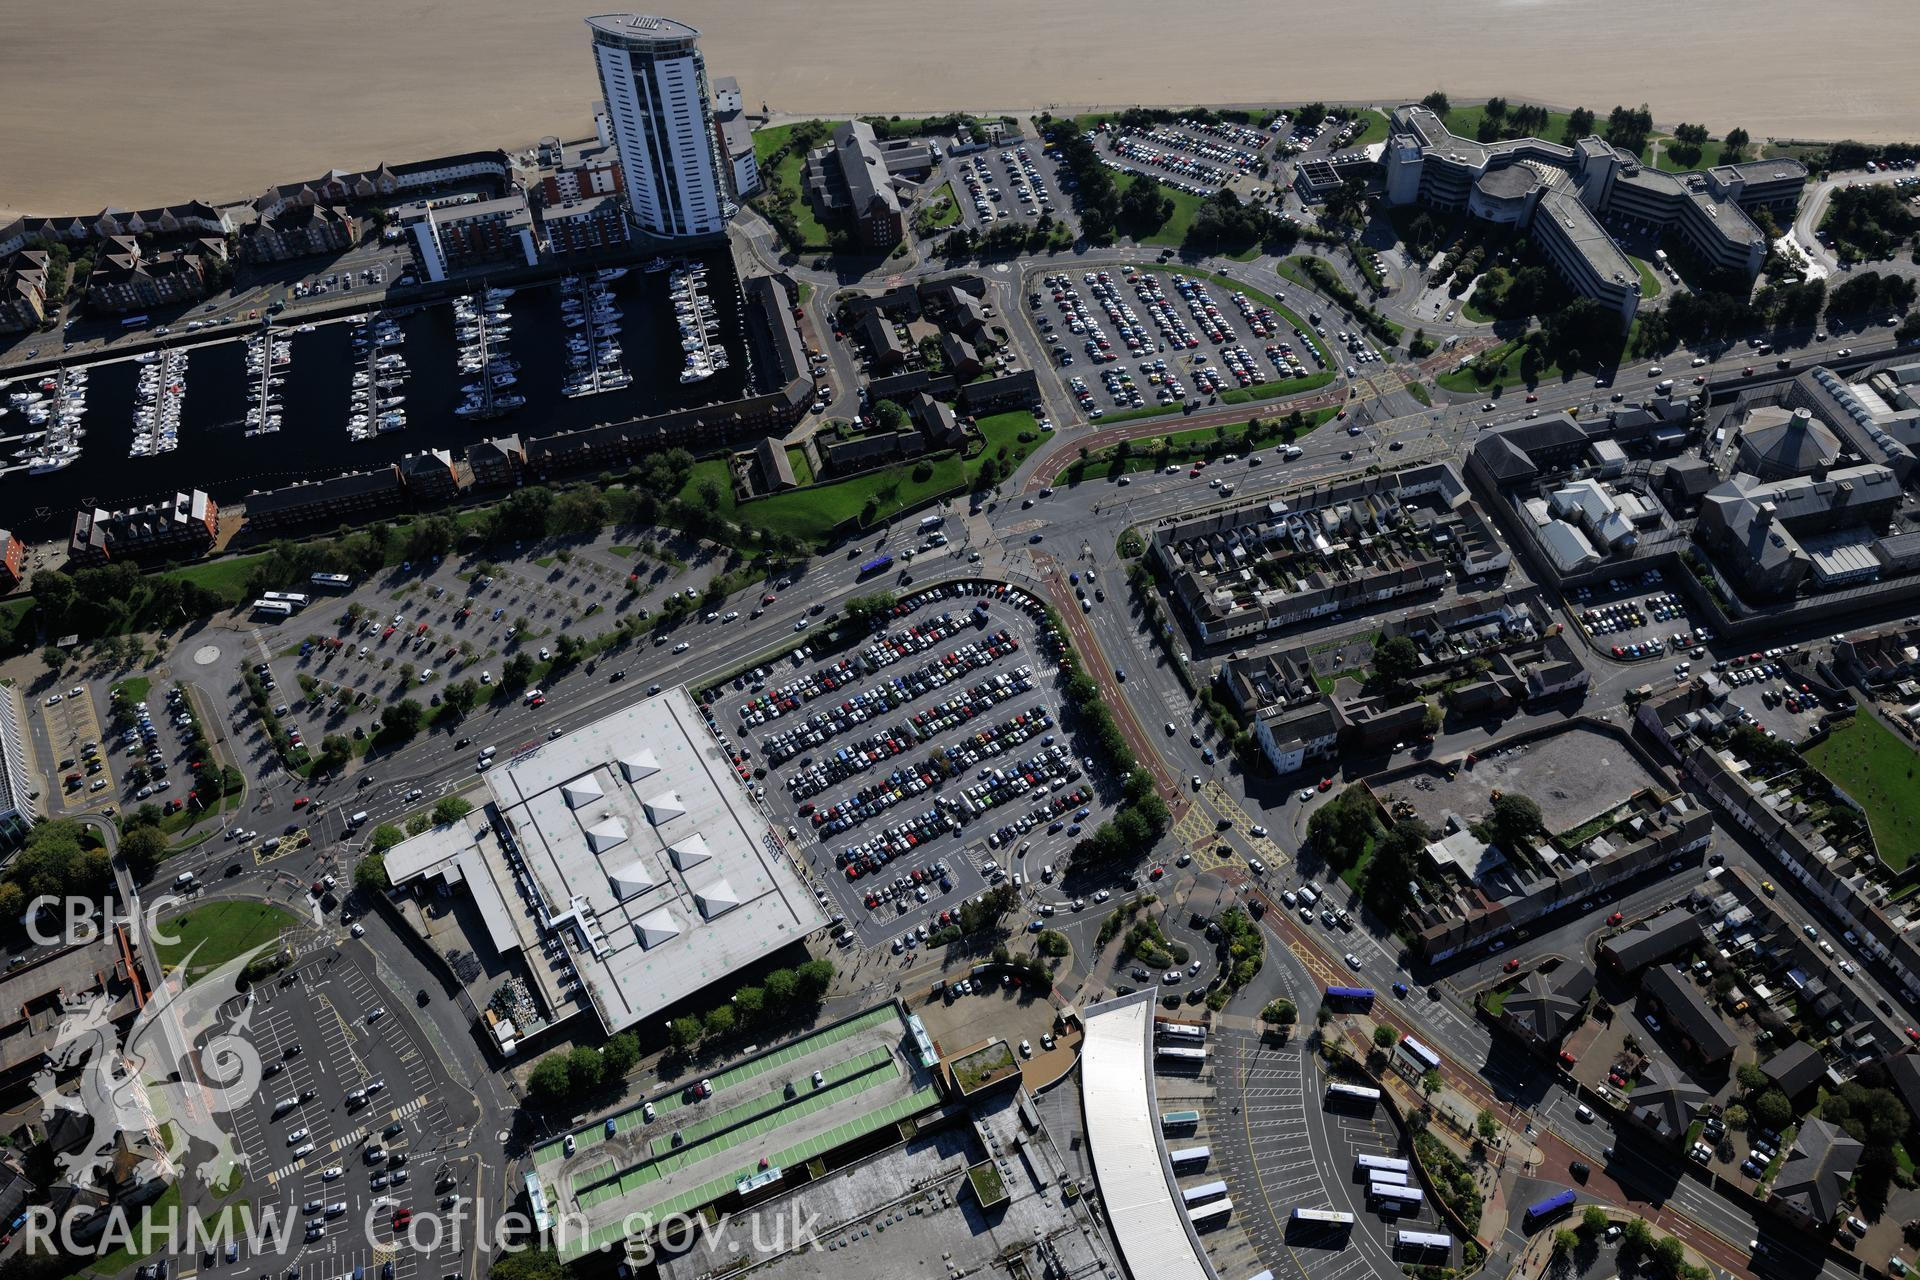 South Dock and Meridian Quay development, Swansea. Oblique aerial photograph taken during the Royal Commission's programme of archaeological aerial reconnaissance by Toby Driver on 30th September 2015.